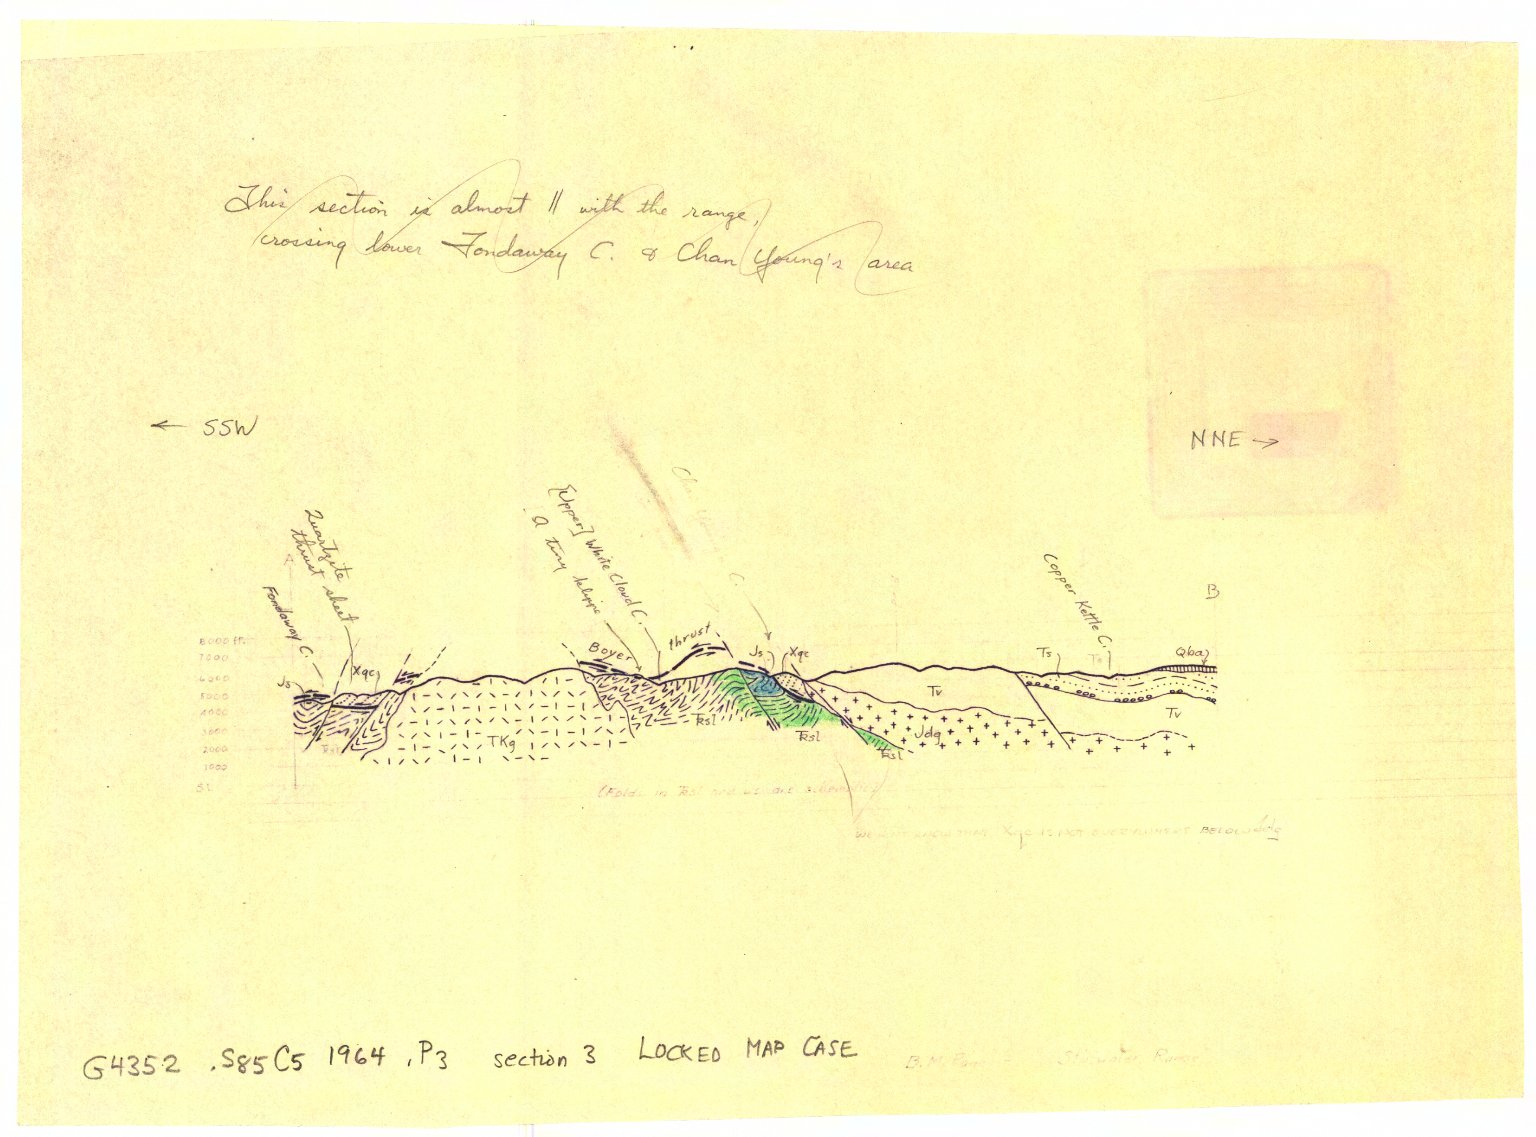 Preliminary geologic map of a part of the Stillwater Range, Churchill County, Nevada